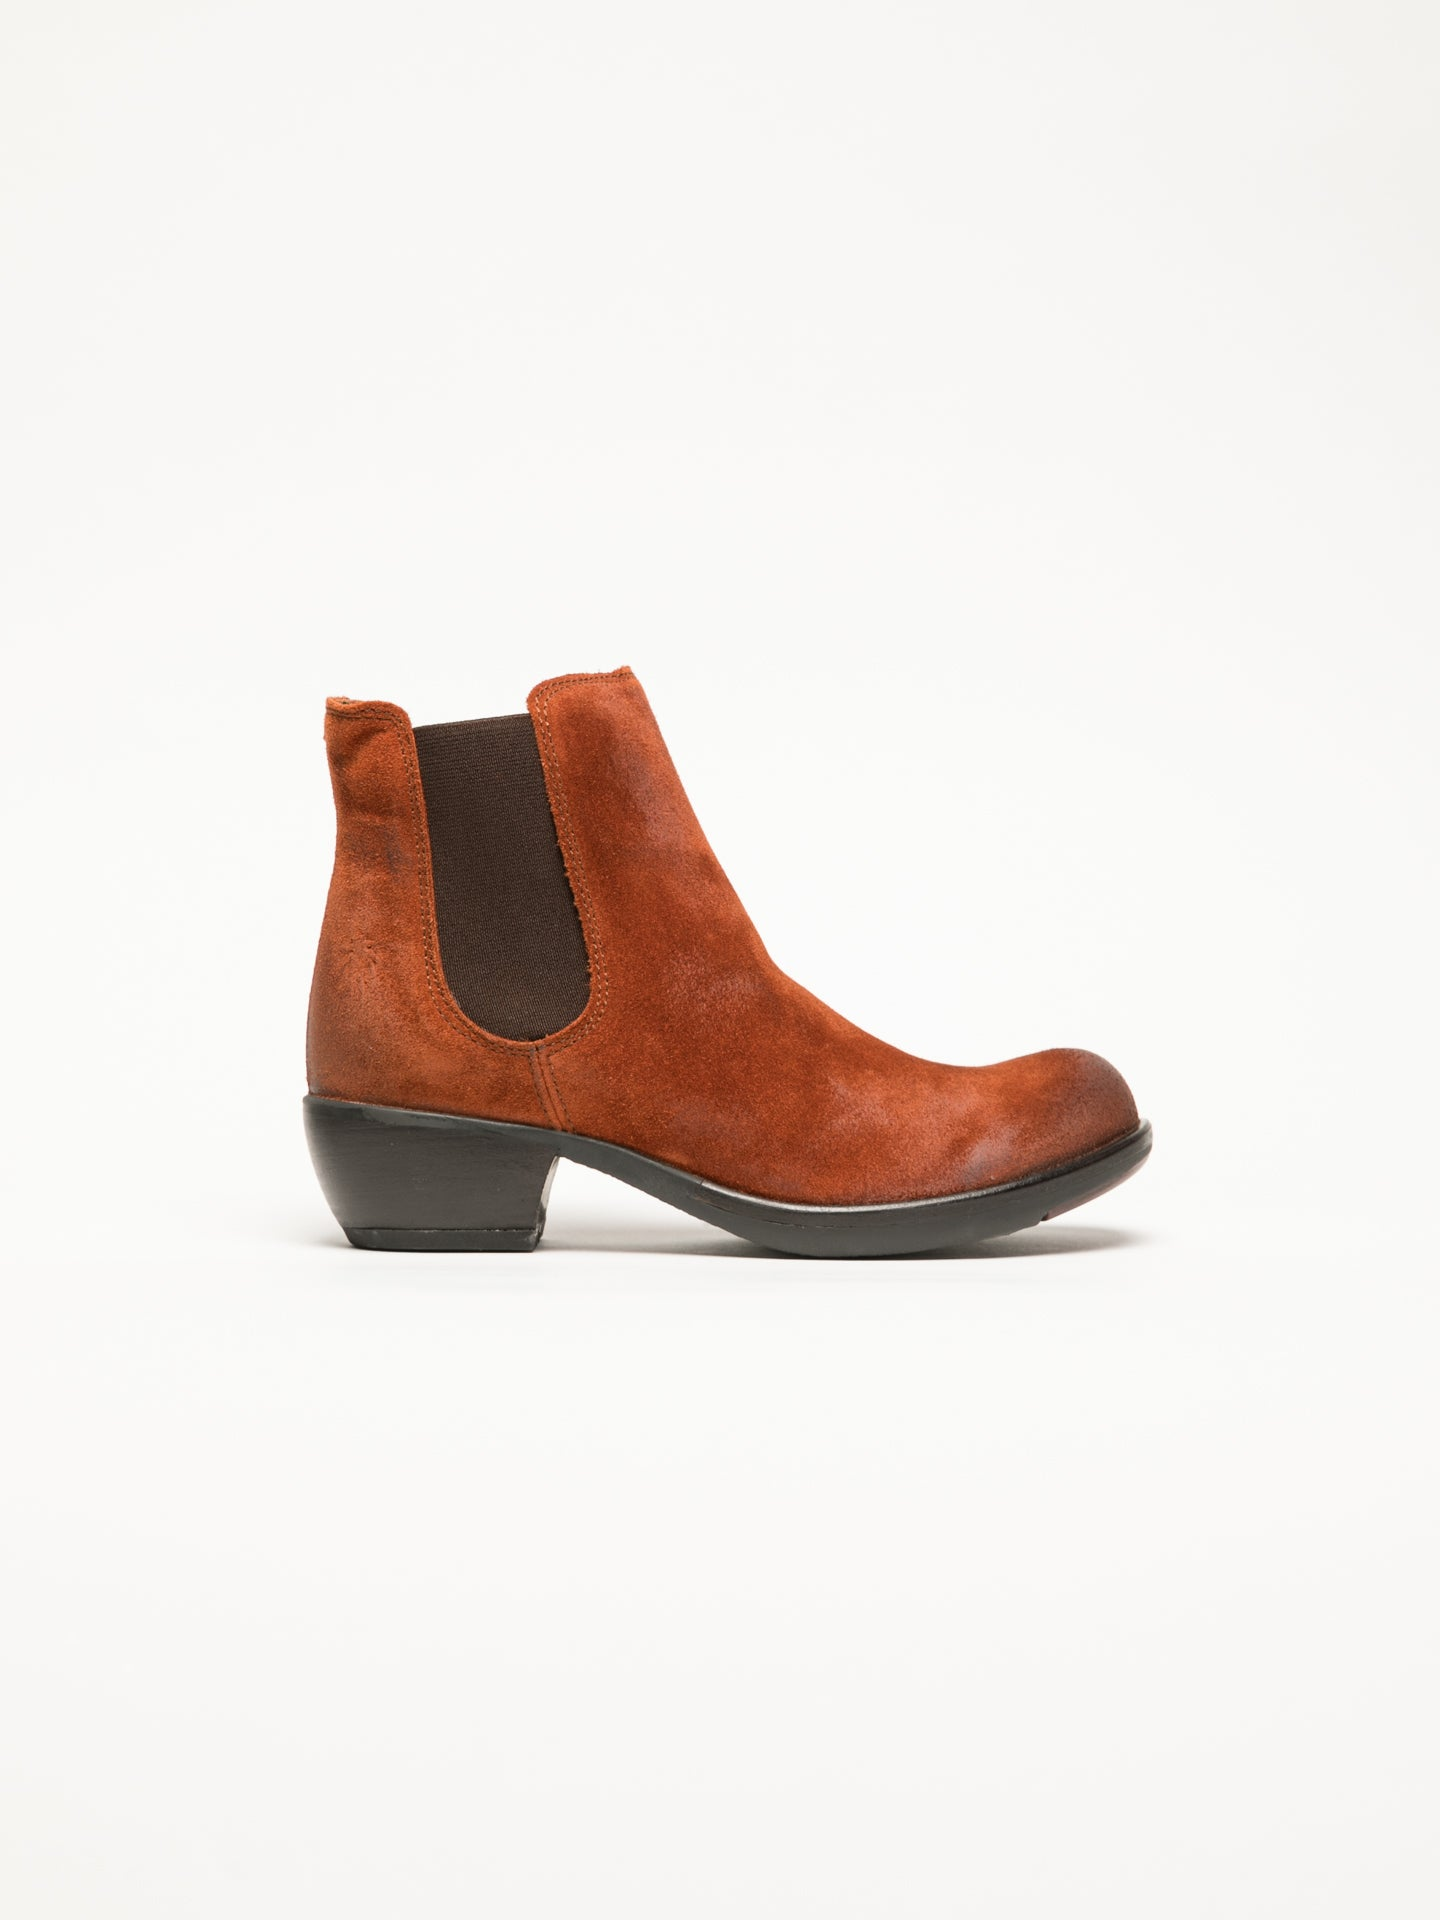 Fly London Orange Chelsea Ankle Boots